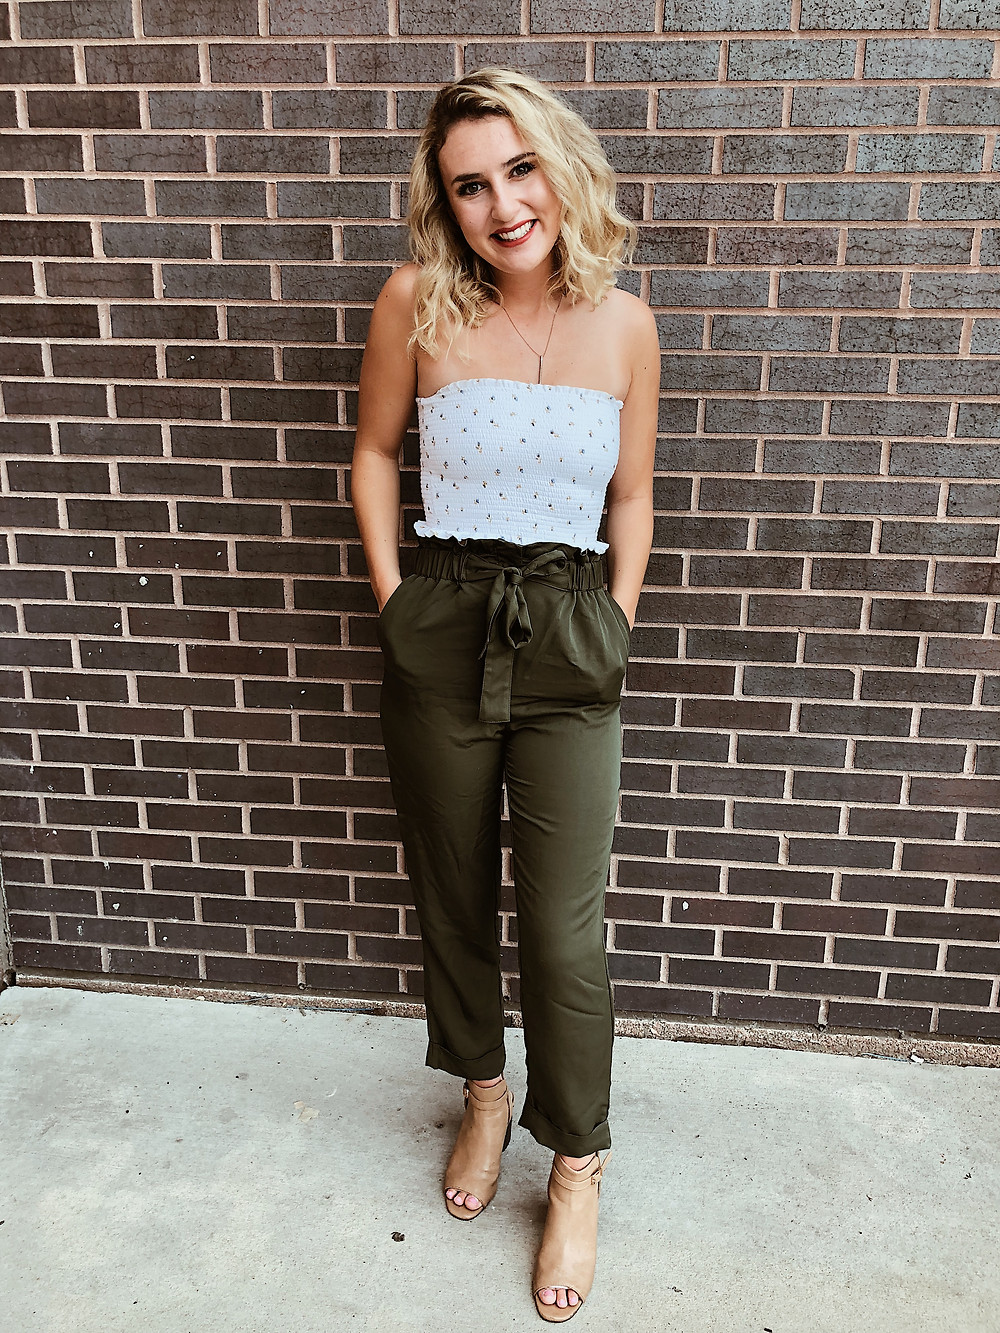 Olive Green Tie Waist Pants with tube top